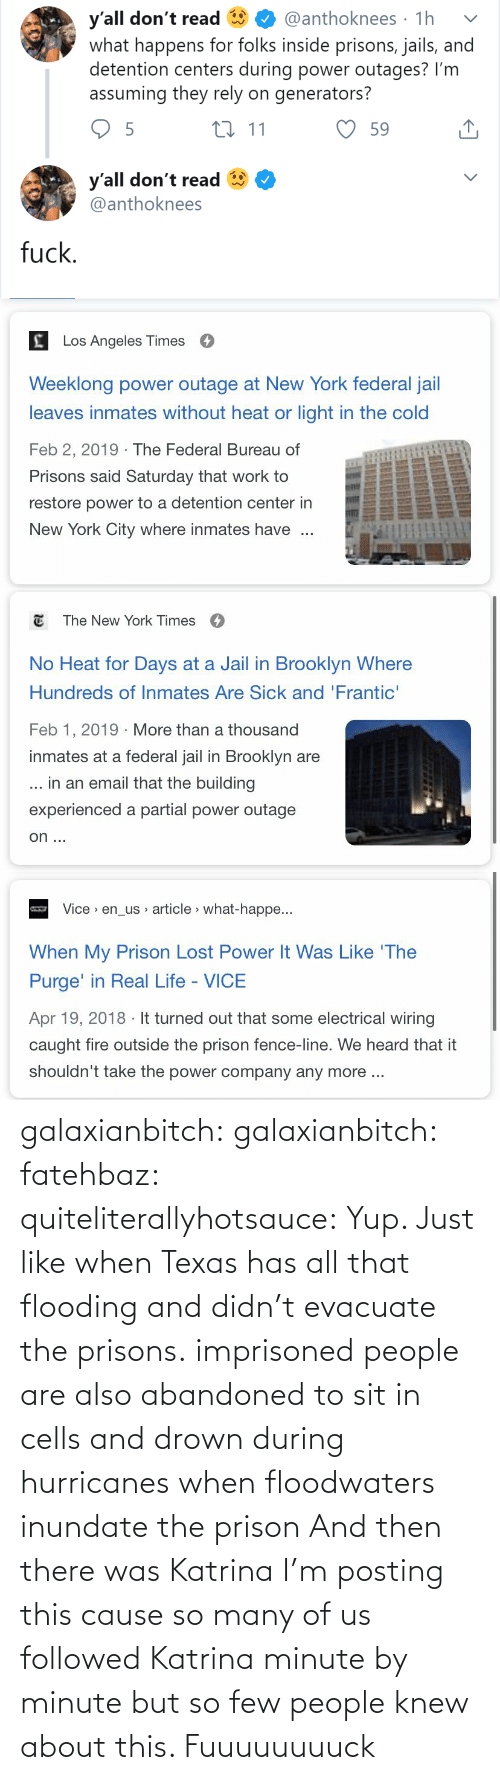 So Many: y'all don't read  what happens for folks inside prisons, jails, and  detention centers during power outages? I'm  assuming they rely on generators?  @anthoknees · 1h  27 11  59  y'all don't read  @anthoknees  fuck.   Los Angeles Times  Weeklong power outage at New York federal jail  leaves inmates without heat or light in the cold  Feb 2, 2019 · The Federal Bureau of  Prisons said Saturday that work to  restore power to a detention center in  New York City where inmates have   E The New York Times  O  No Heat for Days at a Jail in Brooklyn Where  Hundreds of Inmates Are Sick and 'Frantic'  Feb 1, 2019 · More than a thousand  inmates at a federal jail in Brooklyn are  ... in an email that the building  experienced a partial power outage  on ...   Vice > en_us article > what-happe...  When My Prison Lost Power It Was Like 'The  Purge' in Real Life - VICE  Apr 19, 2018 · It turned out that some electrical wiring  caught fire outside the prison fence-line. We heard that it  shouldn't take the power company any more .. galaxianbitch: galaxianbitch:   fatehbaz:  quiteliterallyhotsauce:   Yup. Just like when Texas has all that flooding and didn't evacuate the prisons.   imprisoned people are also abandoned to sit in cells and drown during hurricanes when floodwaters inundate the prison   And then there was Katrina        I'm posting this cause so many of us followed Katrina minute by minute but so few people knew about this.    Fuuuuuuuuck